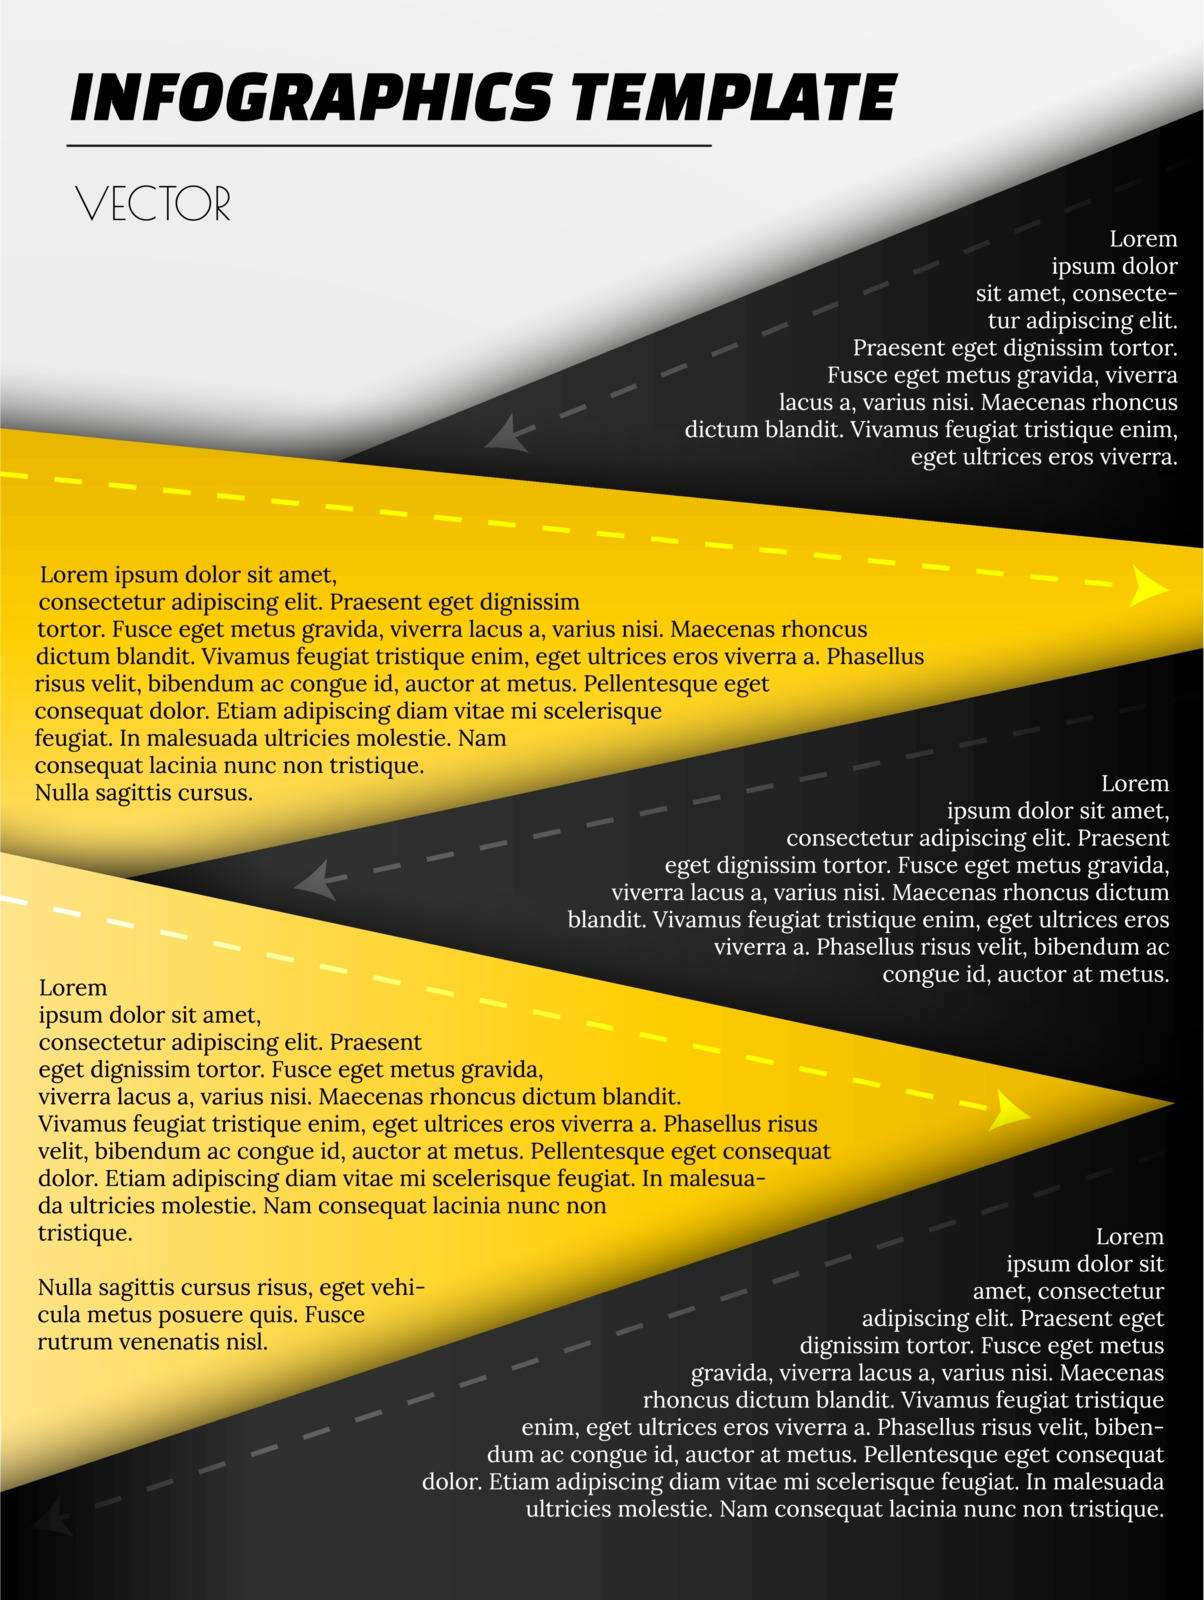 infographic template with yellow and black elements